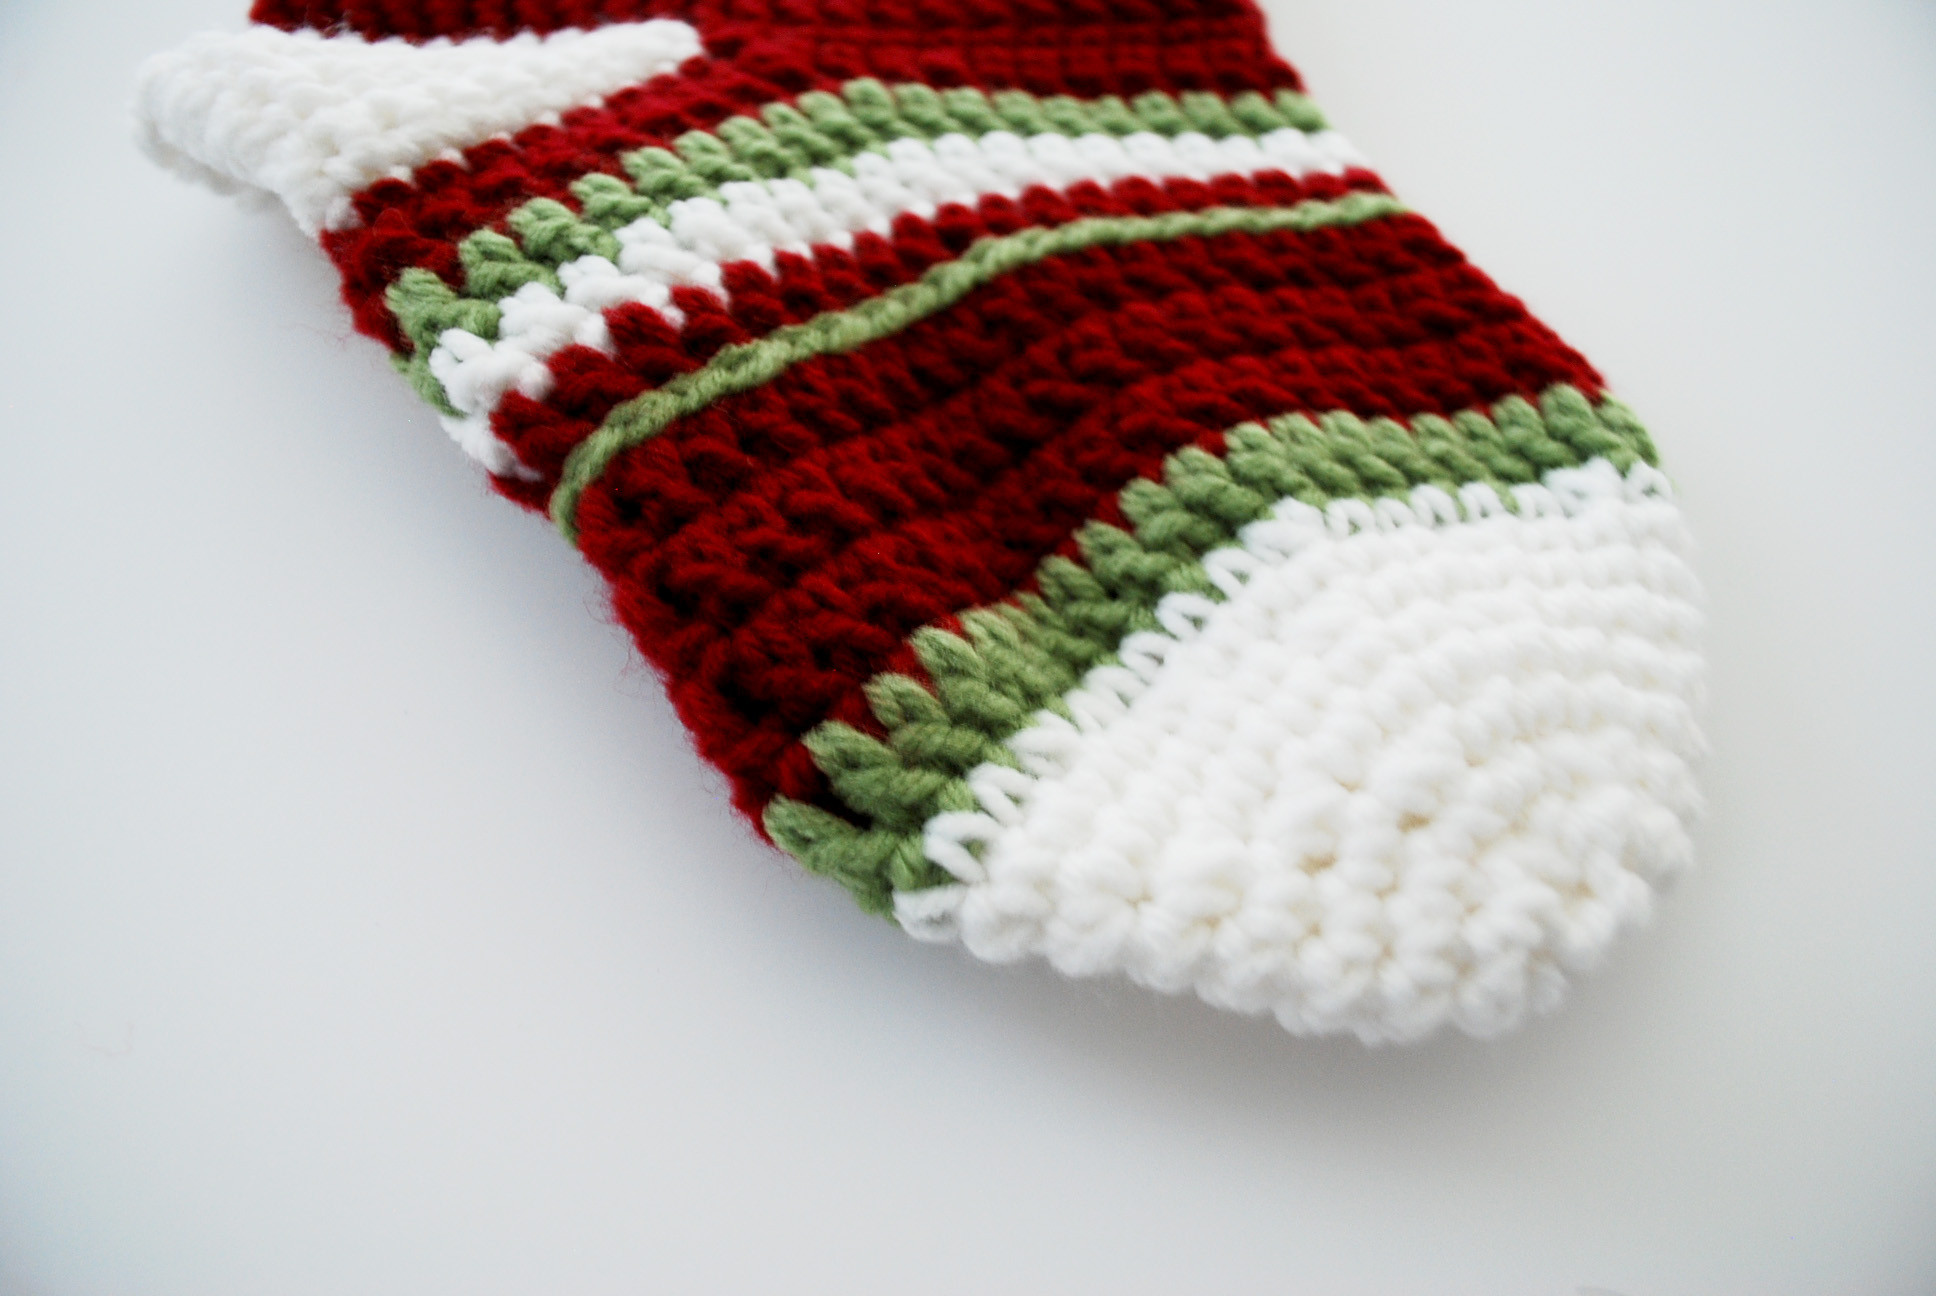 Elegant Crochet Christmas Stockings B Hooked Crochet Crochet Pattern for Christmas Stocking Of Lovely Christmas Stockings Crochet Pattern for Christmas Stocking